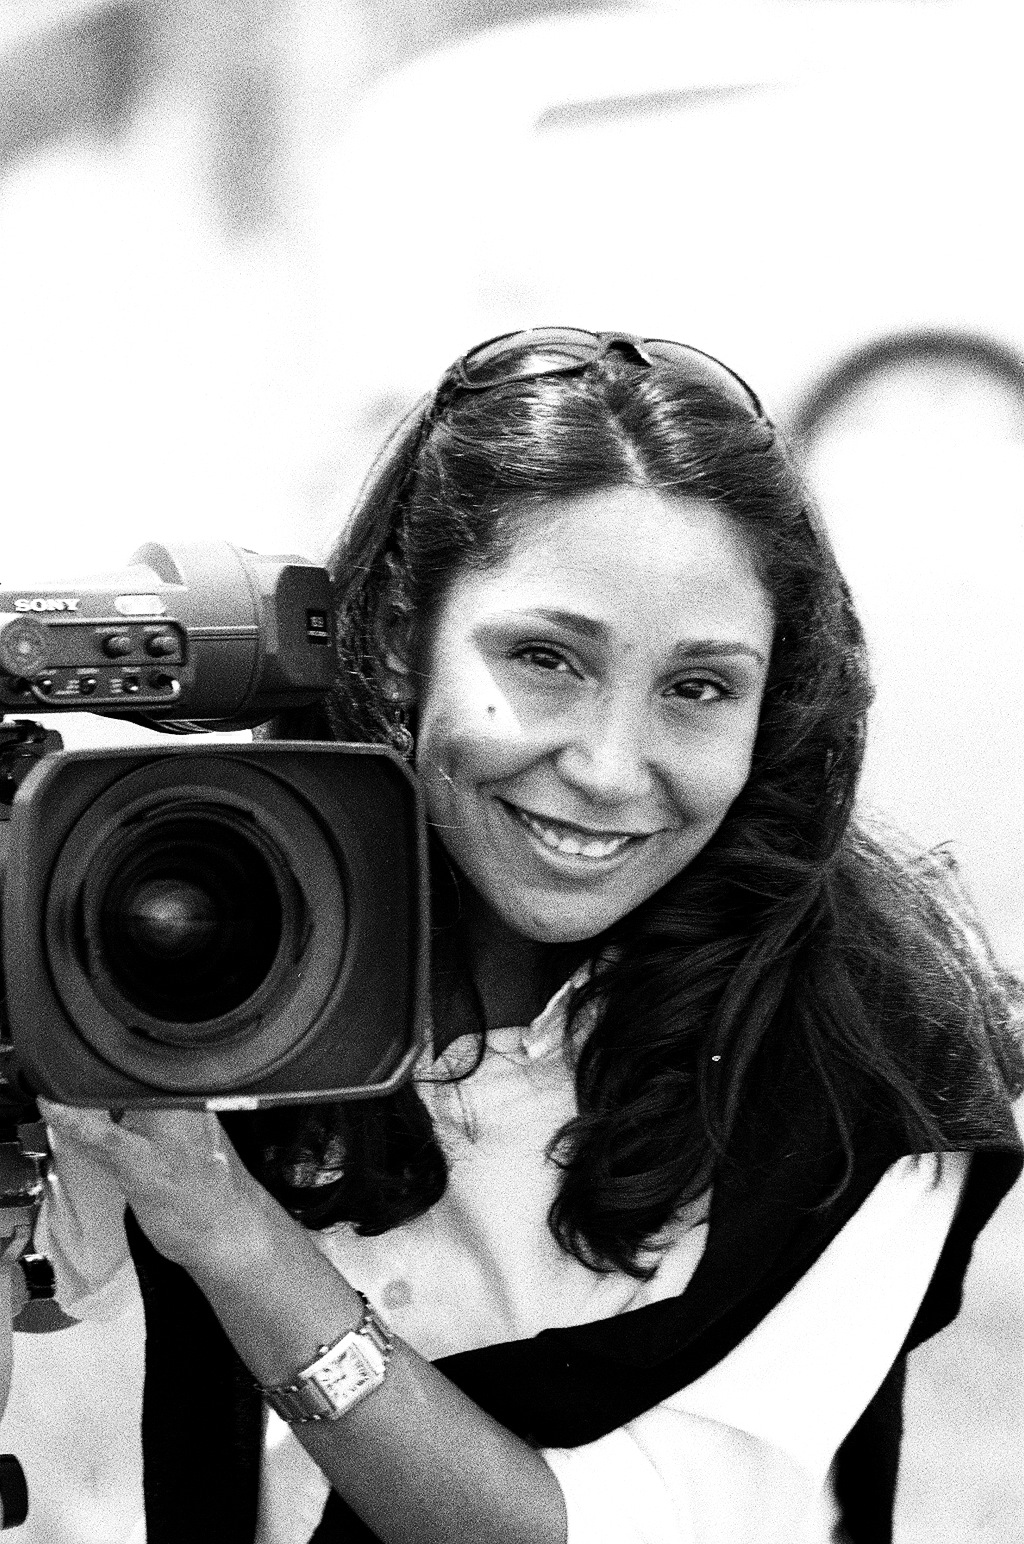 Haifaa Al-Mansour - First female Saudi filmmaker, award winning documentarian